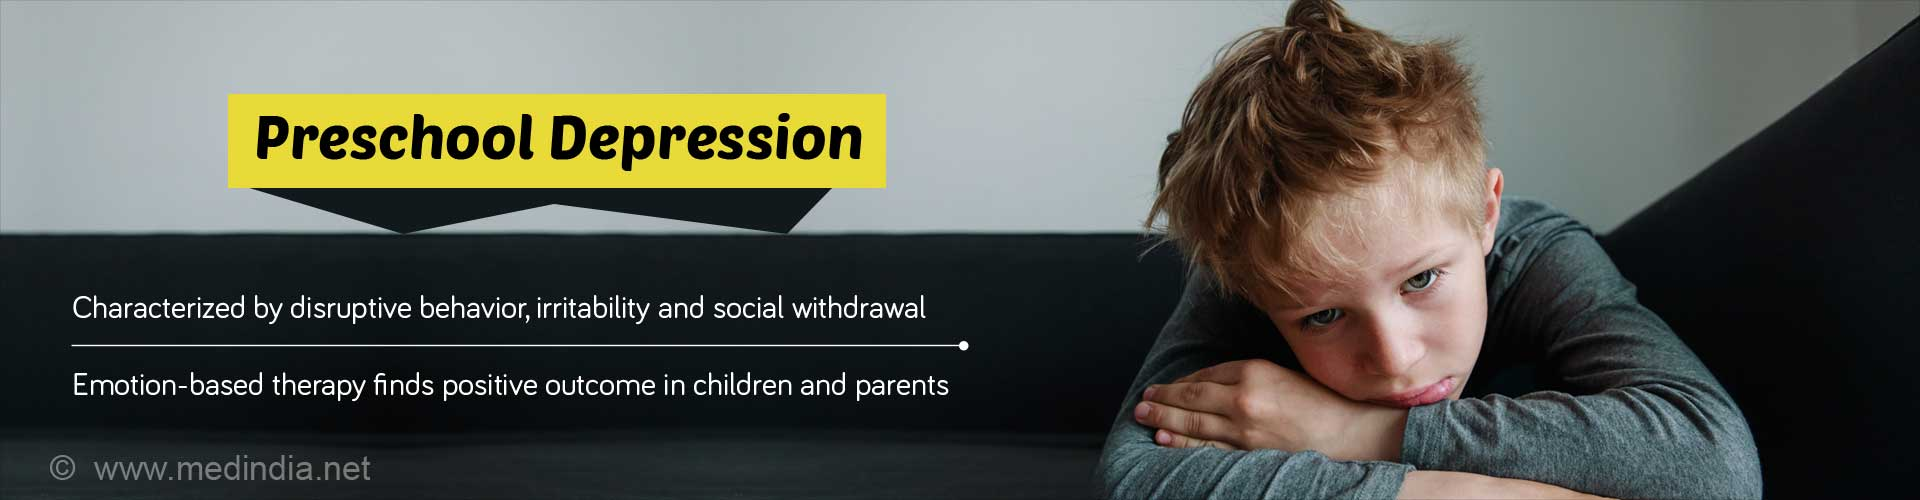 Preschool Depression. Characterized by disruptive behavior, irritability and social withdrawal. Emotion-based therapy finds positive outcome in children and parents.